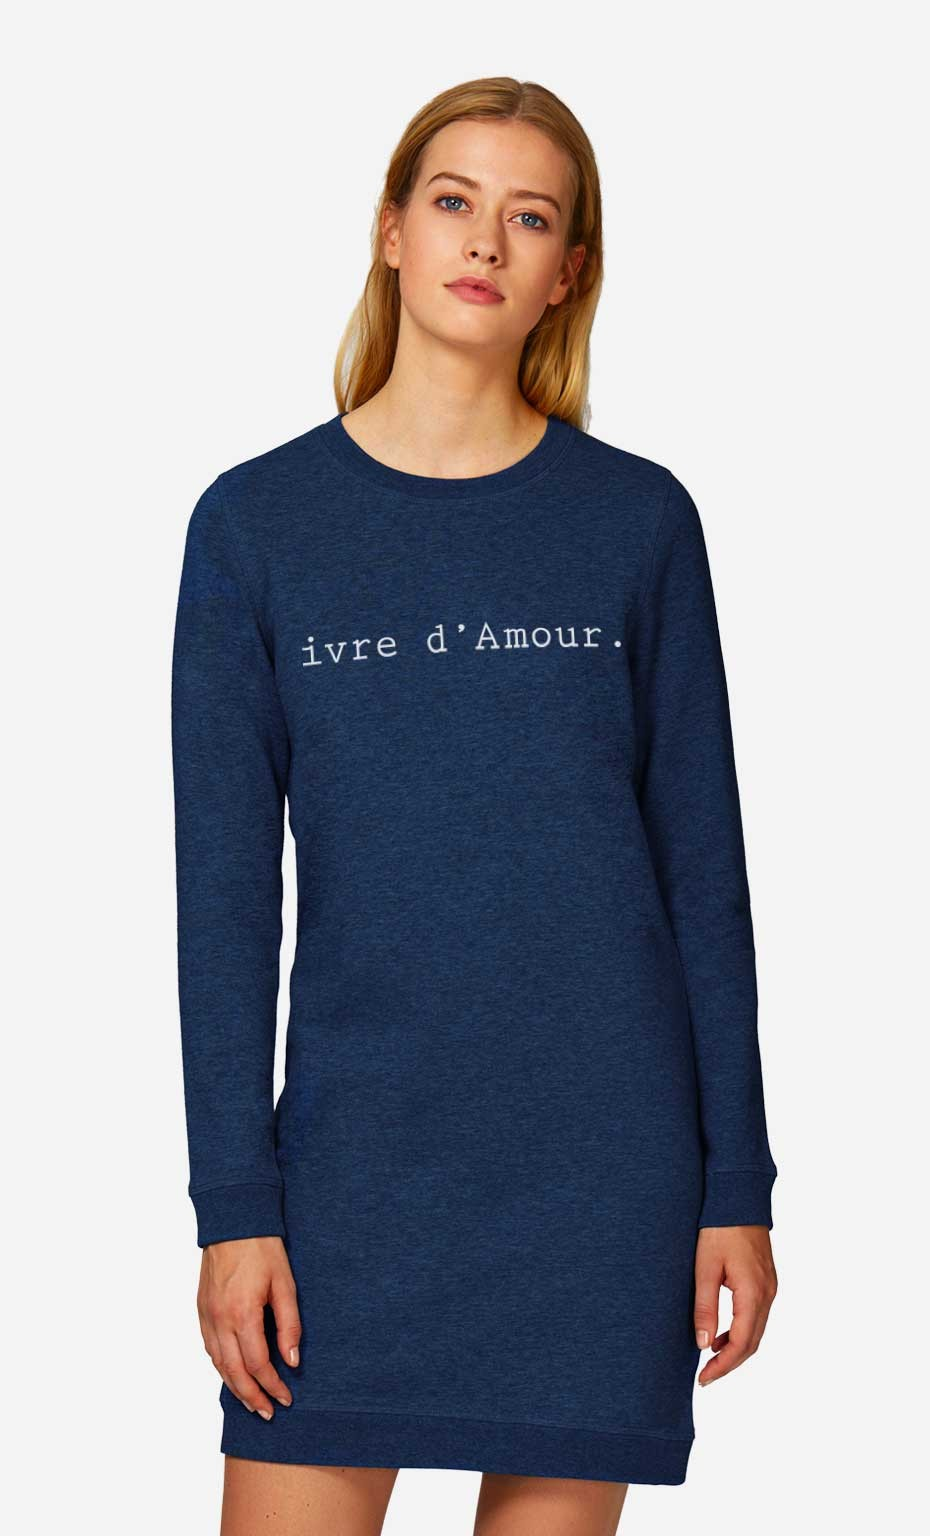 Robe-Sweat Ivre d'Amour